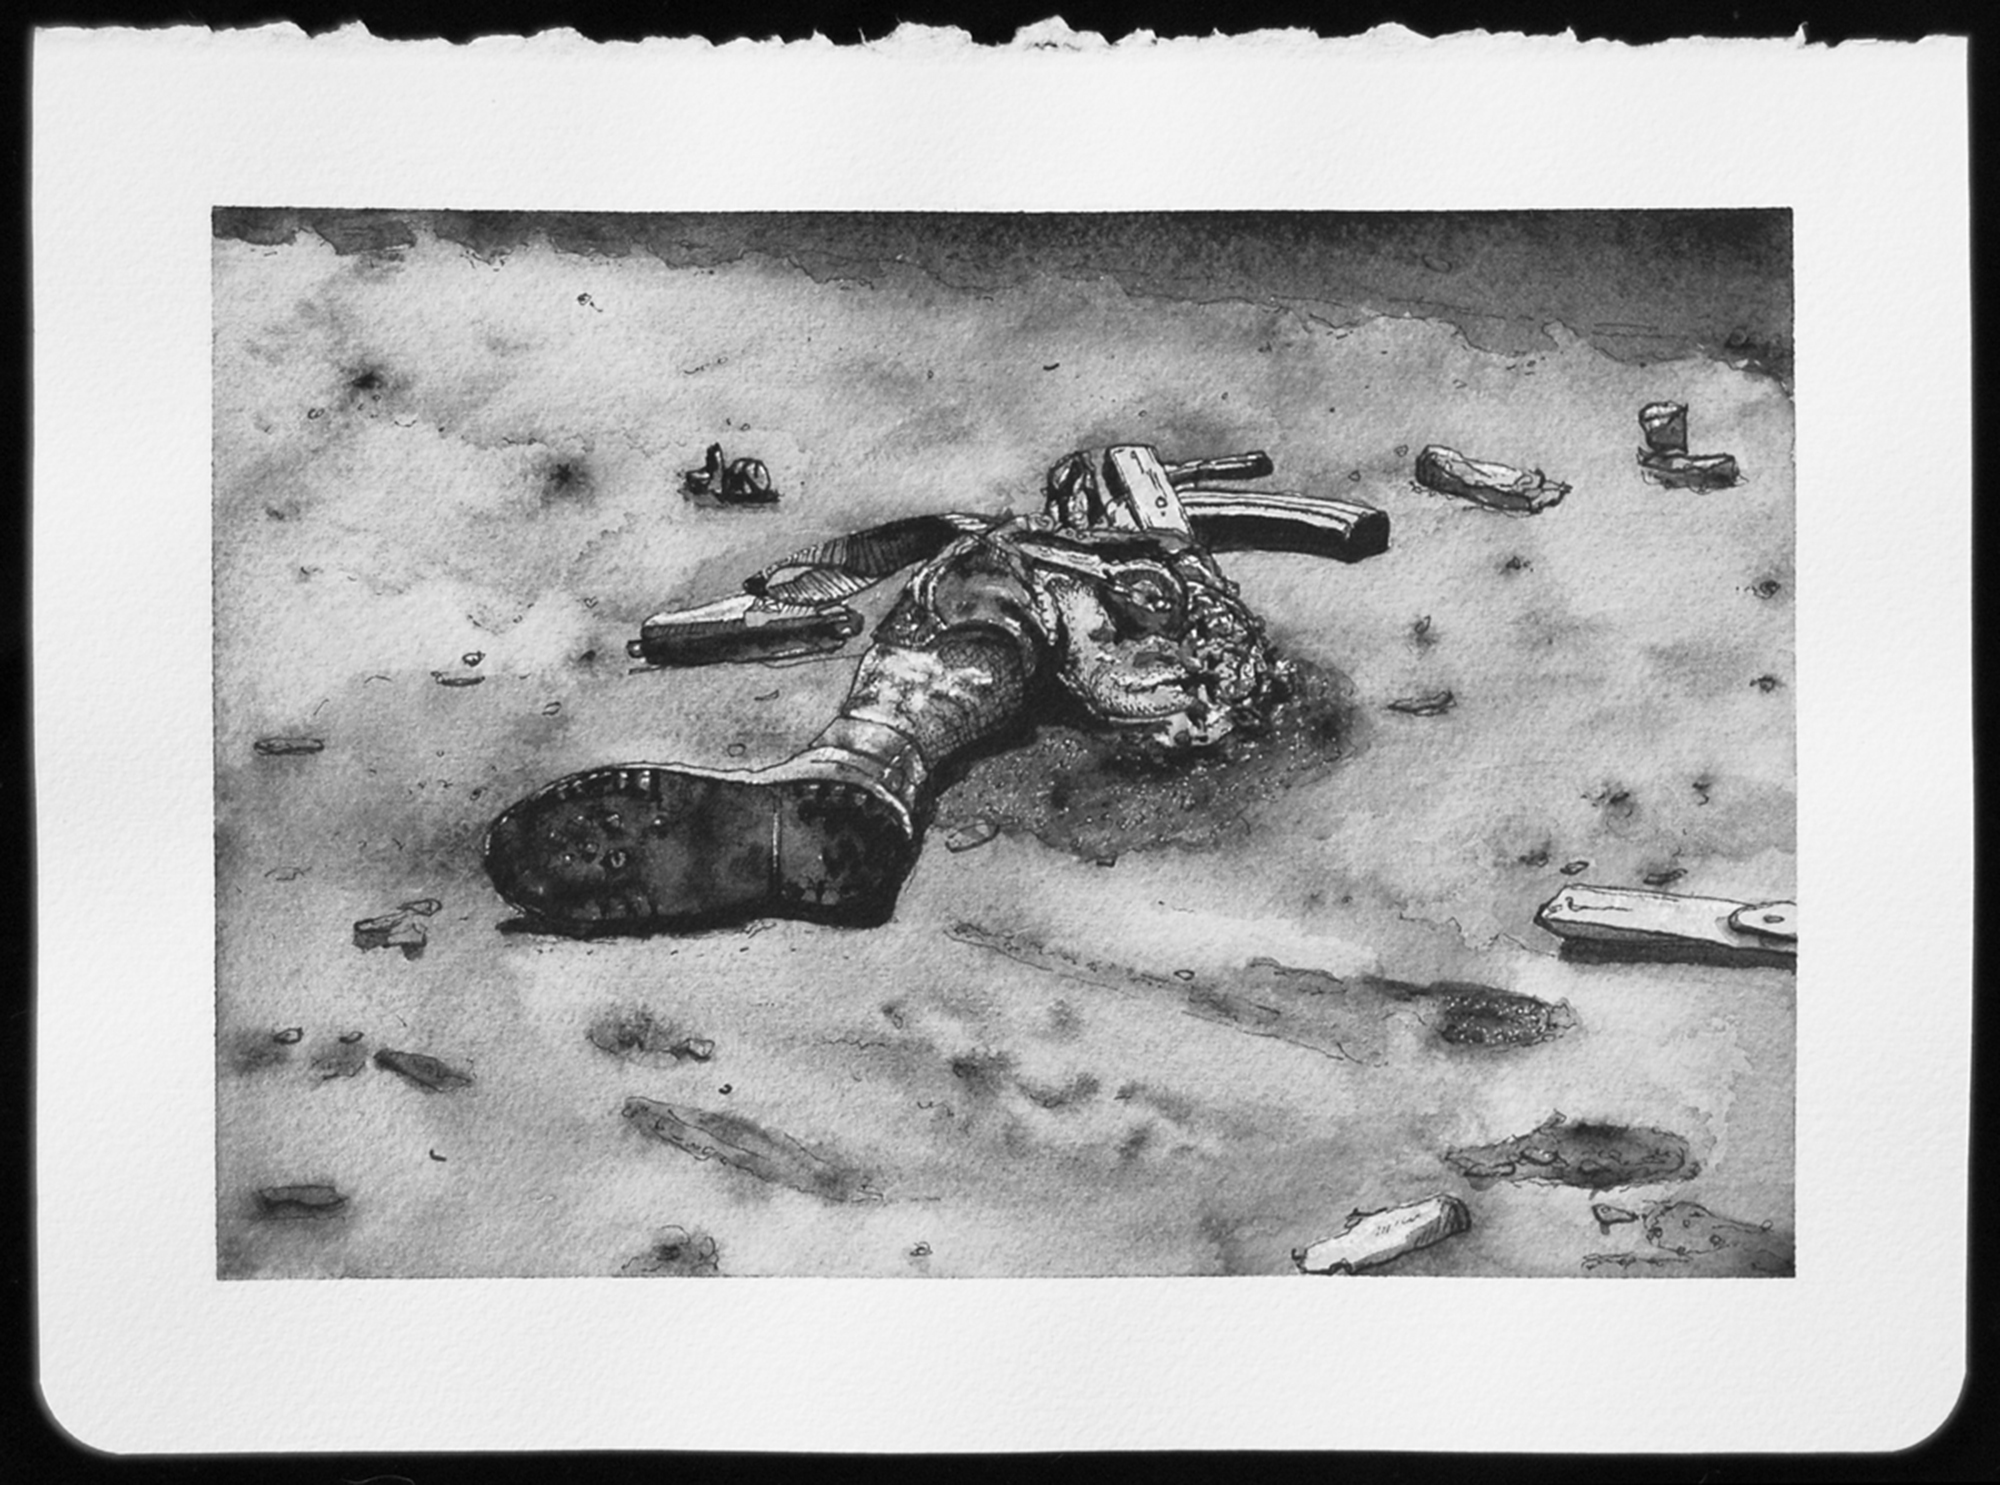 DEATH_133.jpg,2010  |  8.25 x 11 inches  |  archival ink and gouache on paper